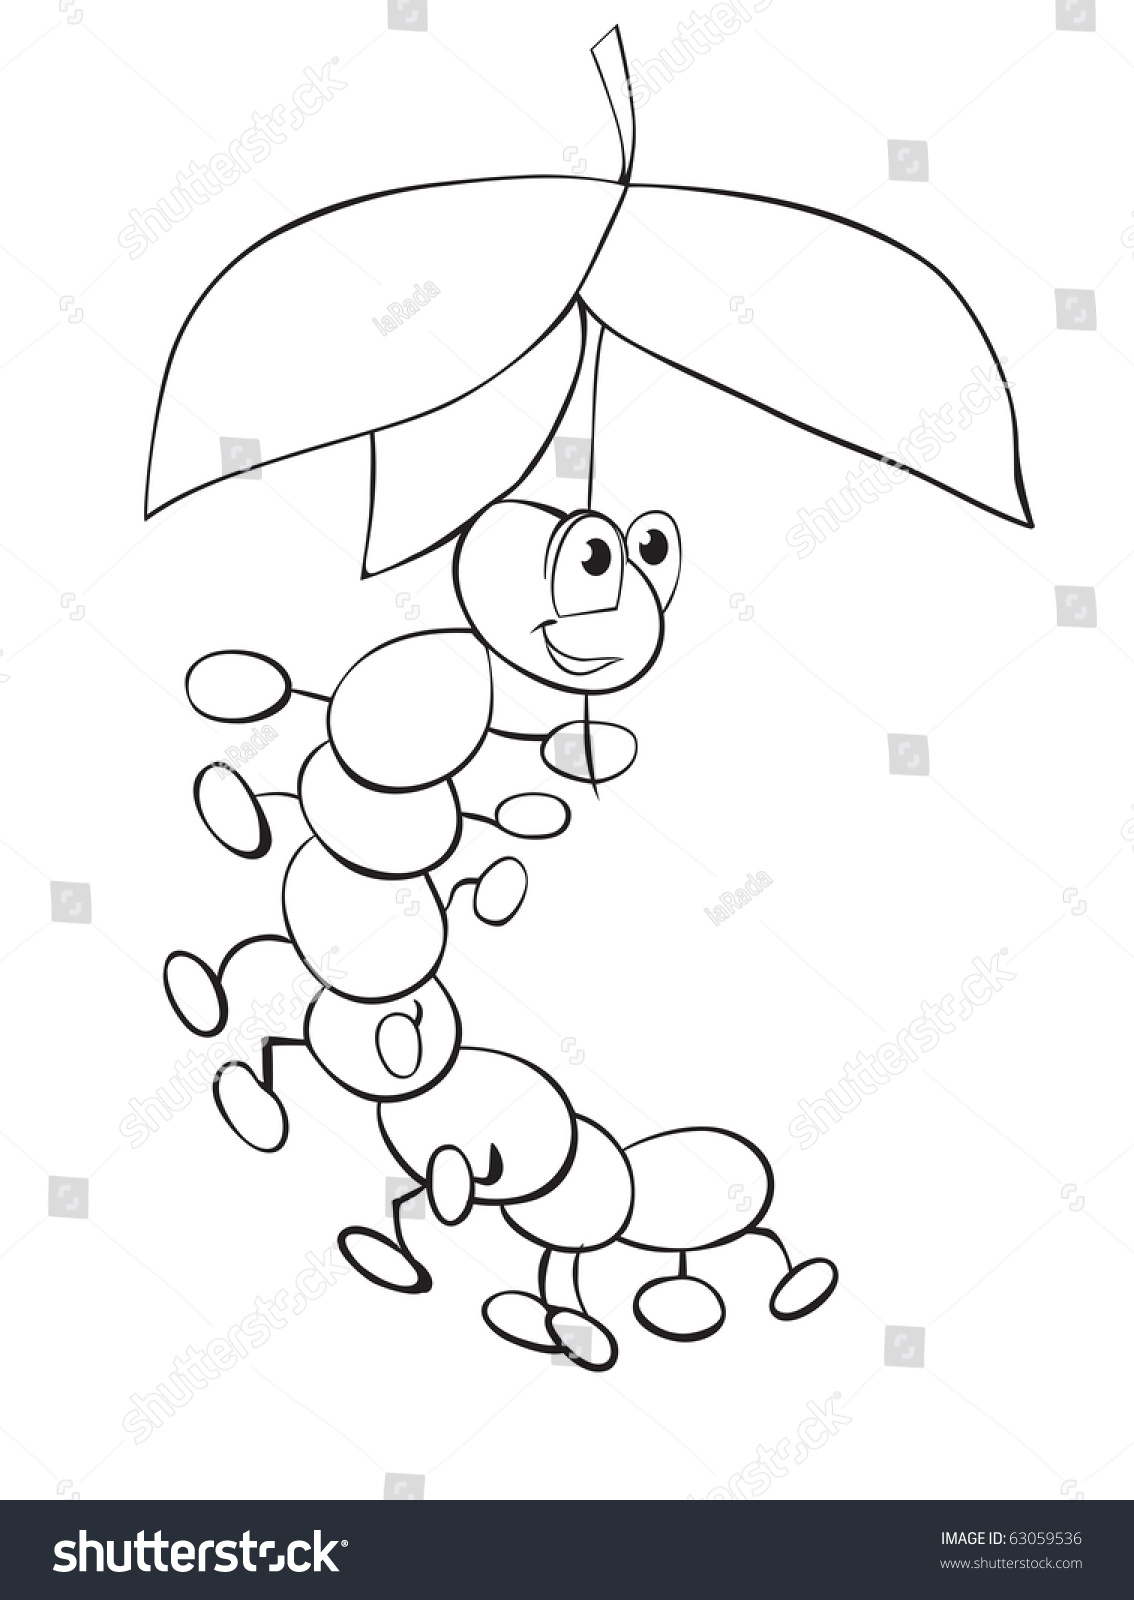 caterpillar under umbrella leaves outline drawing stock